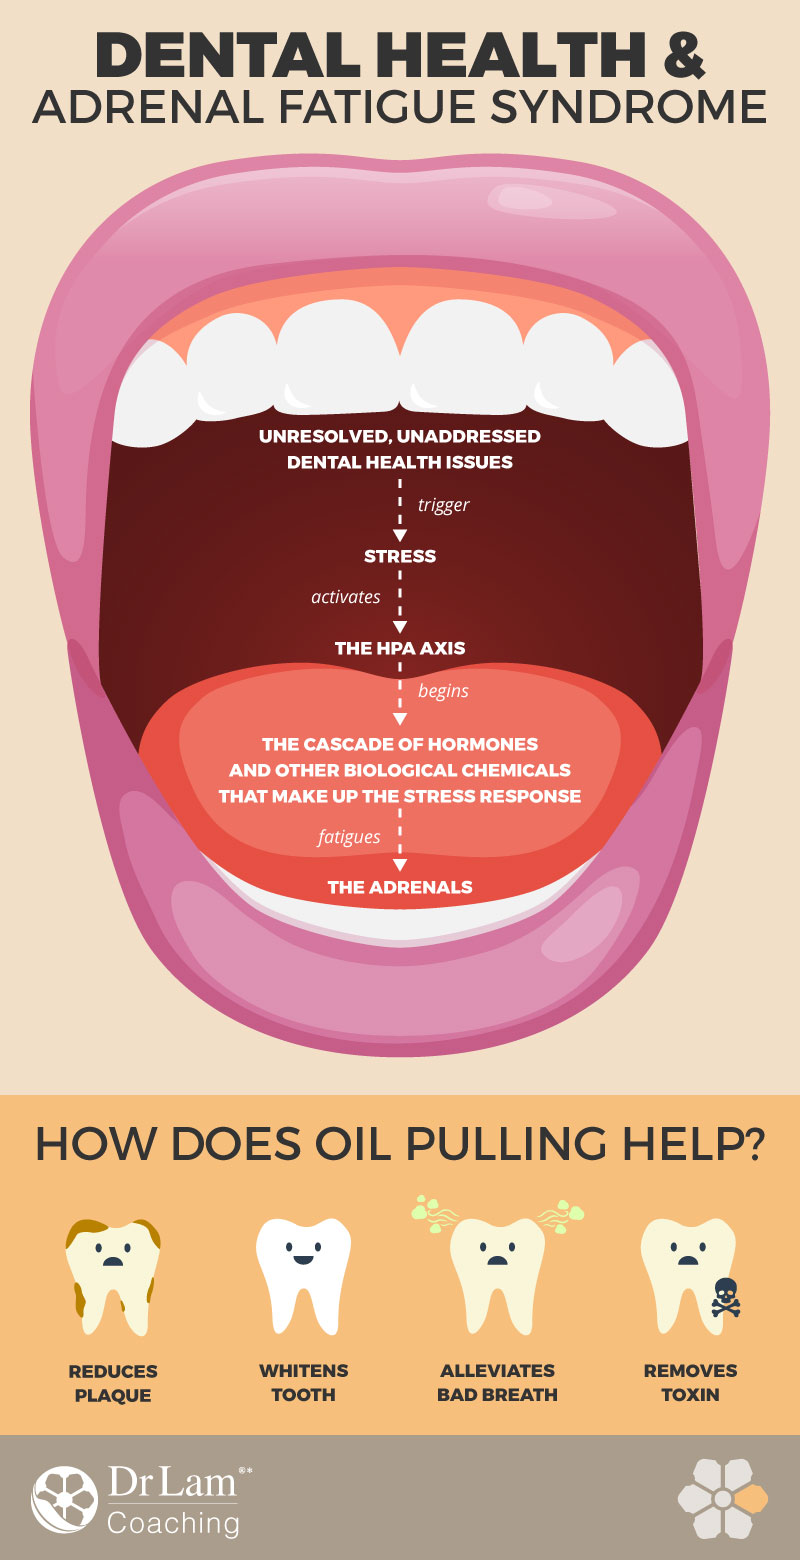 Check out this easy to understand infographic about dental health and AFS